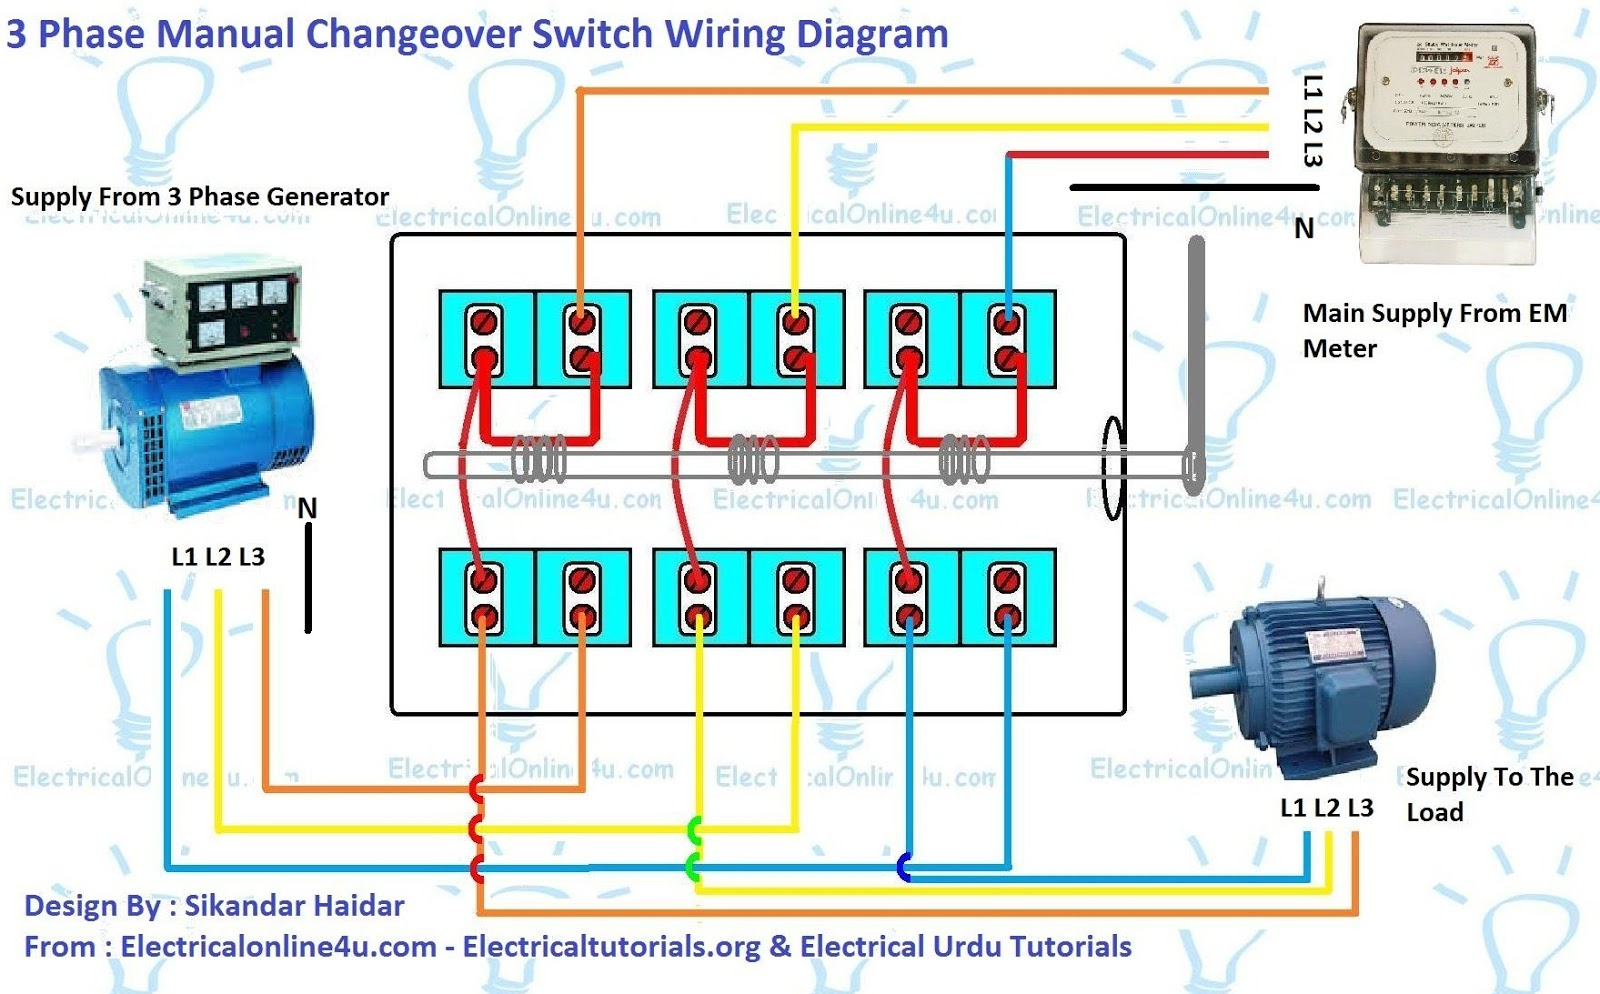 3%2Bphase%2Bmanual%2Bchangeover%2Bswitch%2Bwiring%2Bdiagram 3 phase manual changeover switch wiring diagram for generator 3 phase generator wiring diagram at creativeand.co